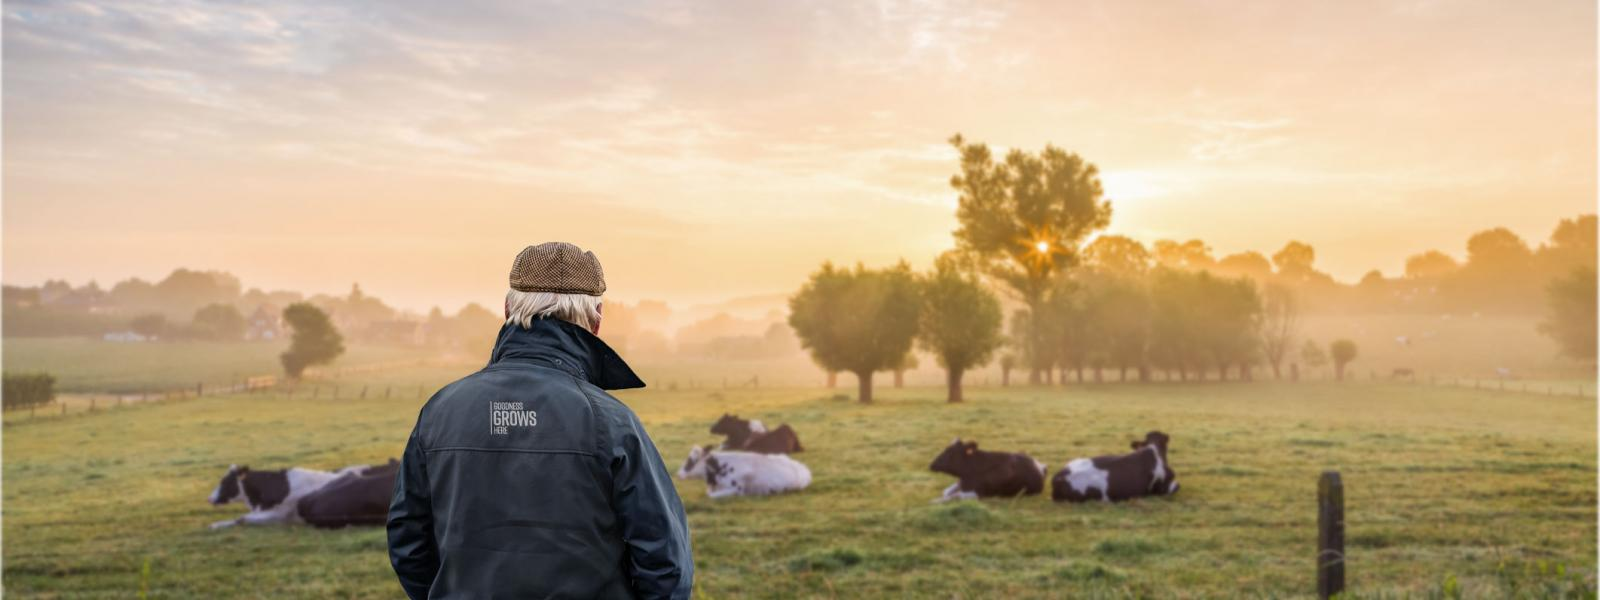 Image of a farmer with his back to the camera looking out at his field of cows